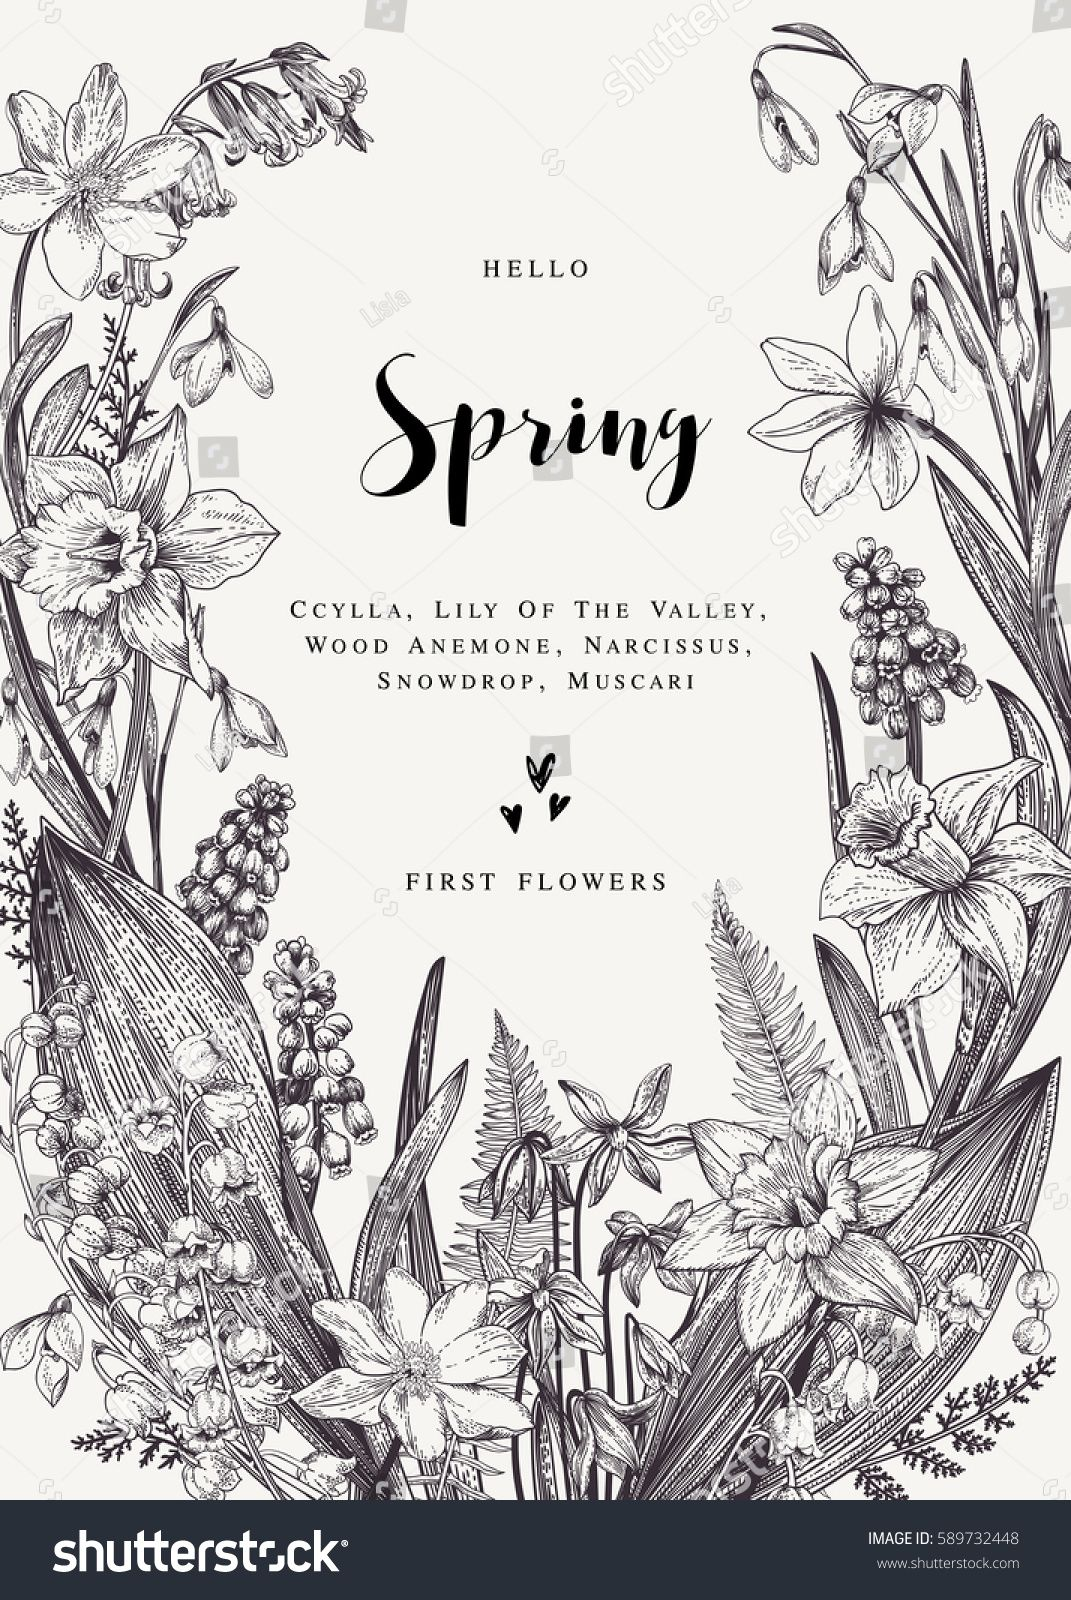 Floral wreath with spring flowers vector vintage botanical floral wreath with spring flowers vector vintage botanical illustration black and white mightylinksfo